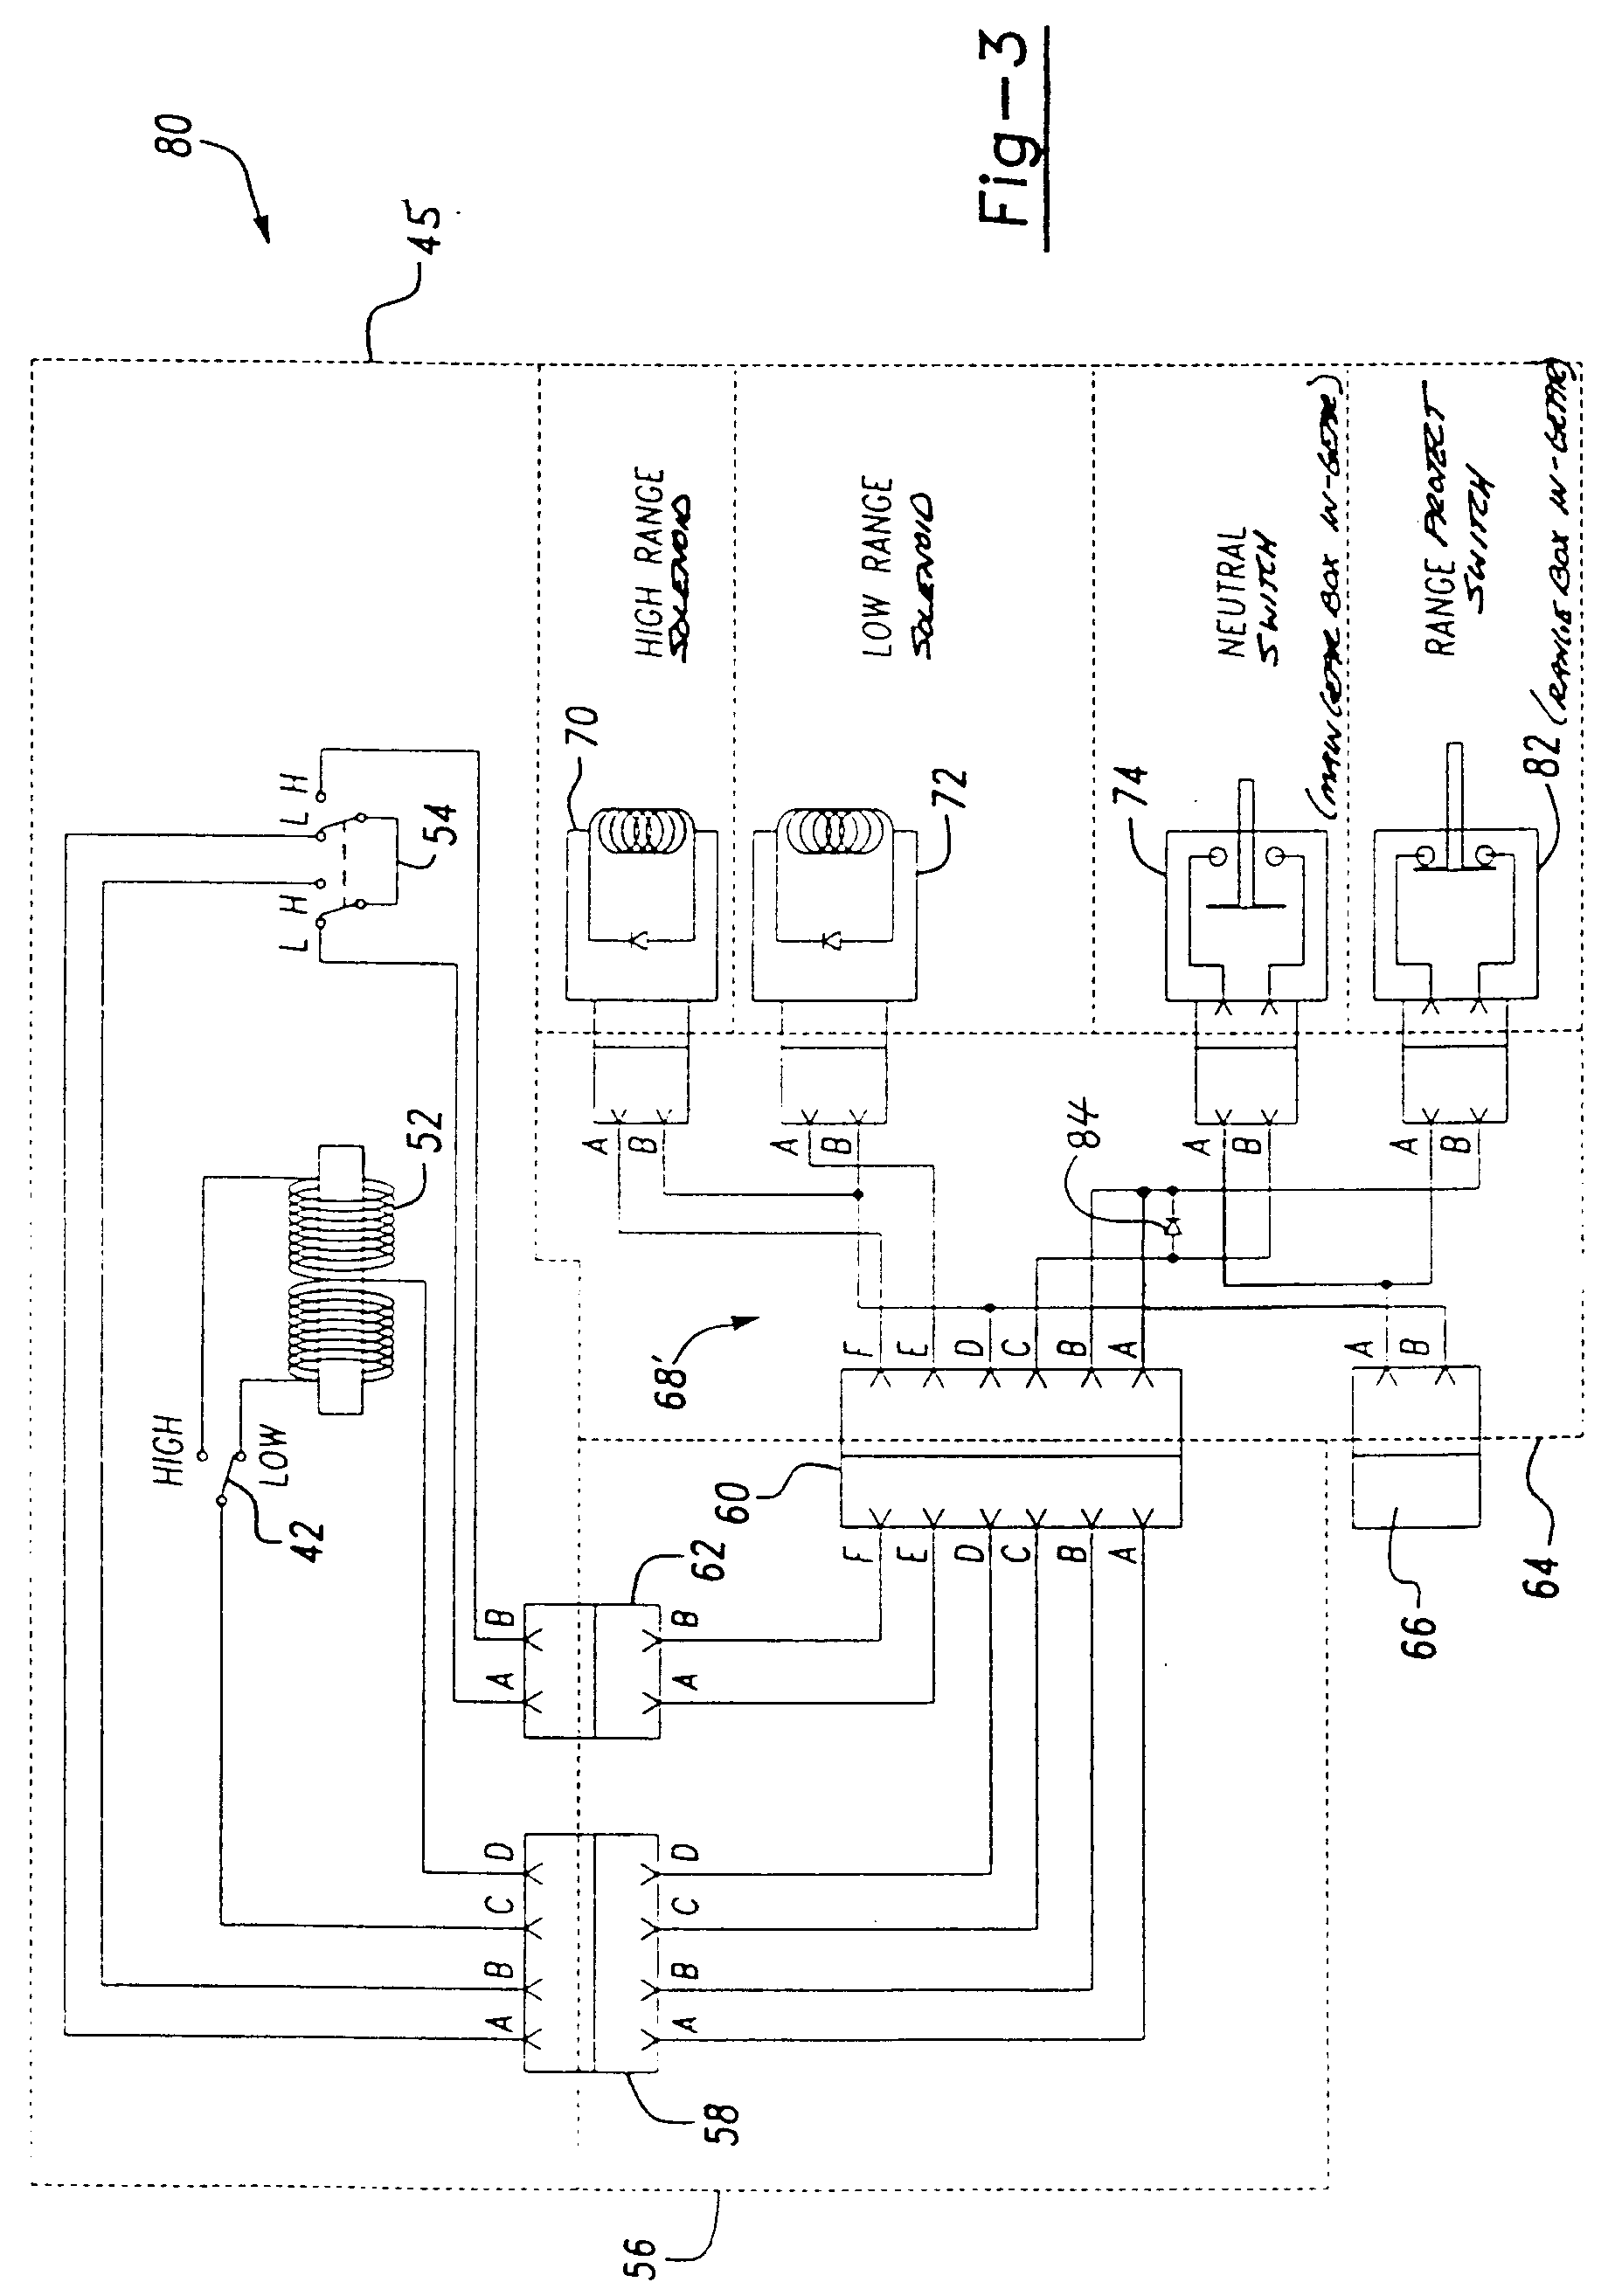 Eaton Auto Trans Wiring Diagrams Opinions About Diagram Cutler Hammer Transformer 1326 Switch 3 Way Odicis Contactor